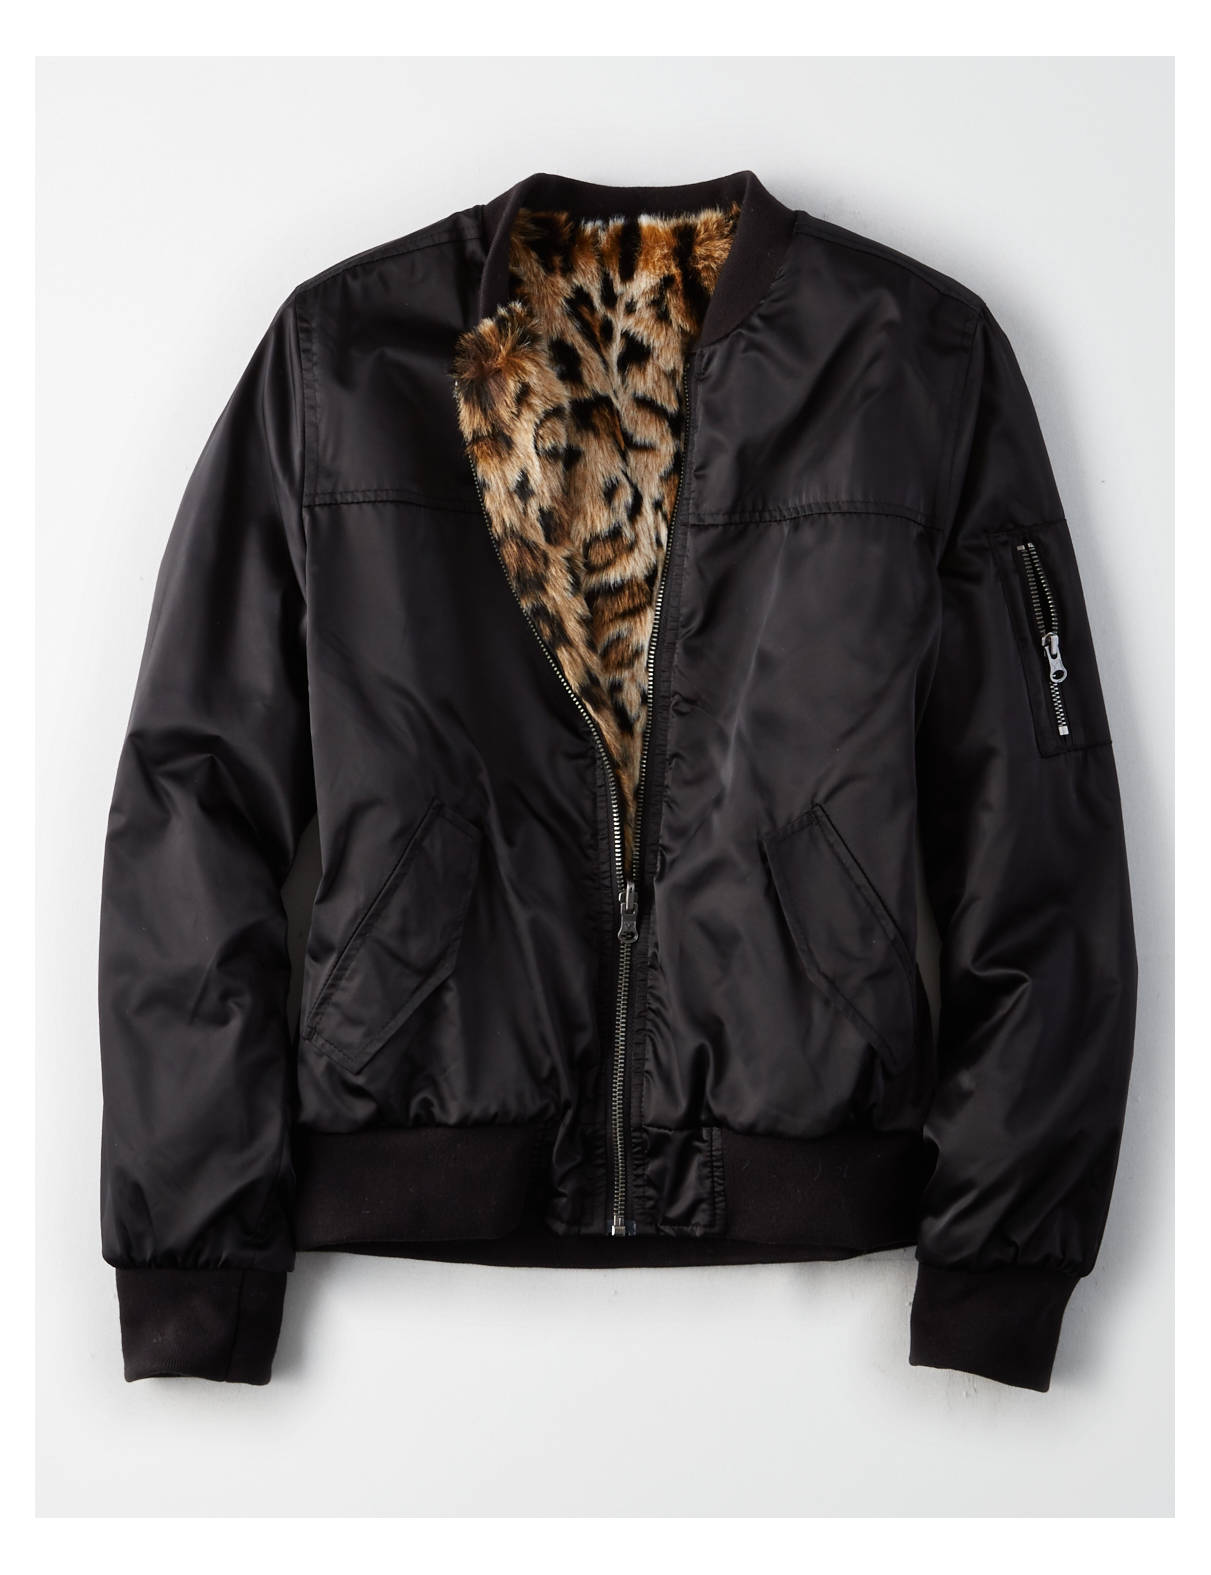 Bomber Jackets for Women | American Eagle Outfitters